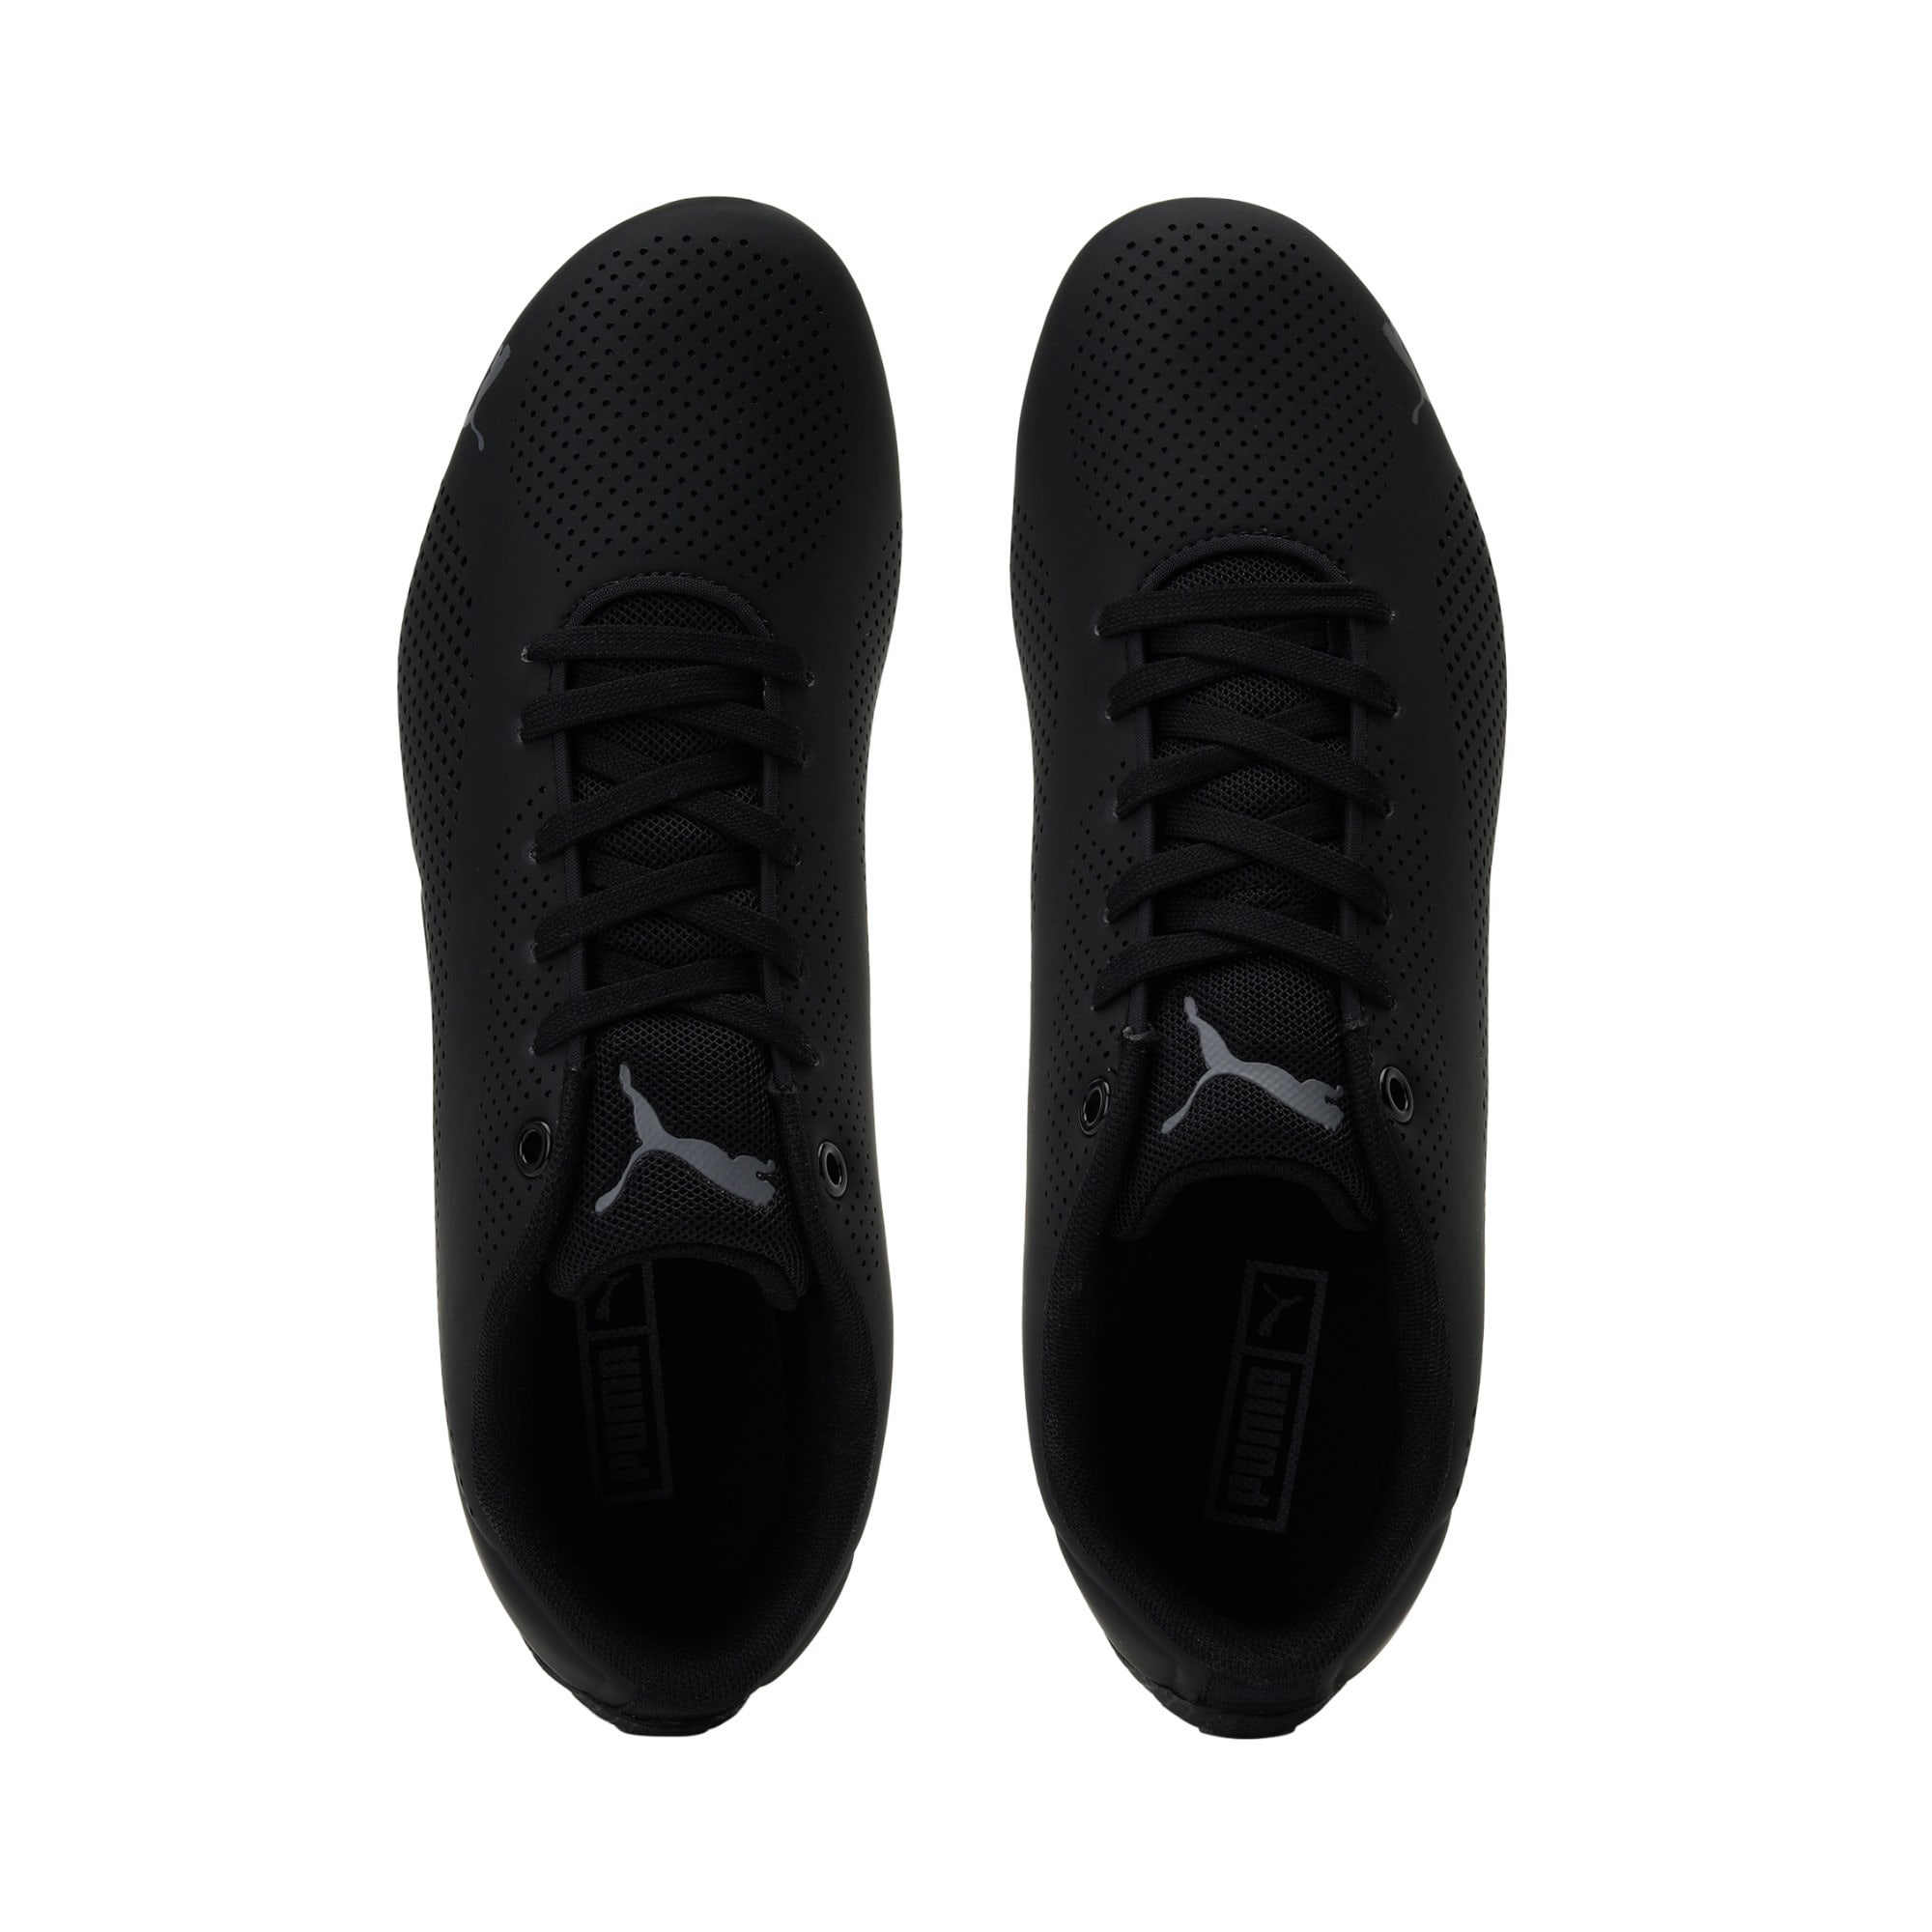 Thumbnail 6 of Drift Cat 5 Ultra Trainers, Puma Black-QUIET SHADE, medium-IND